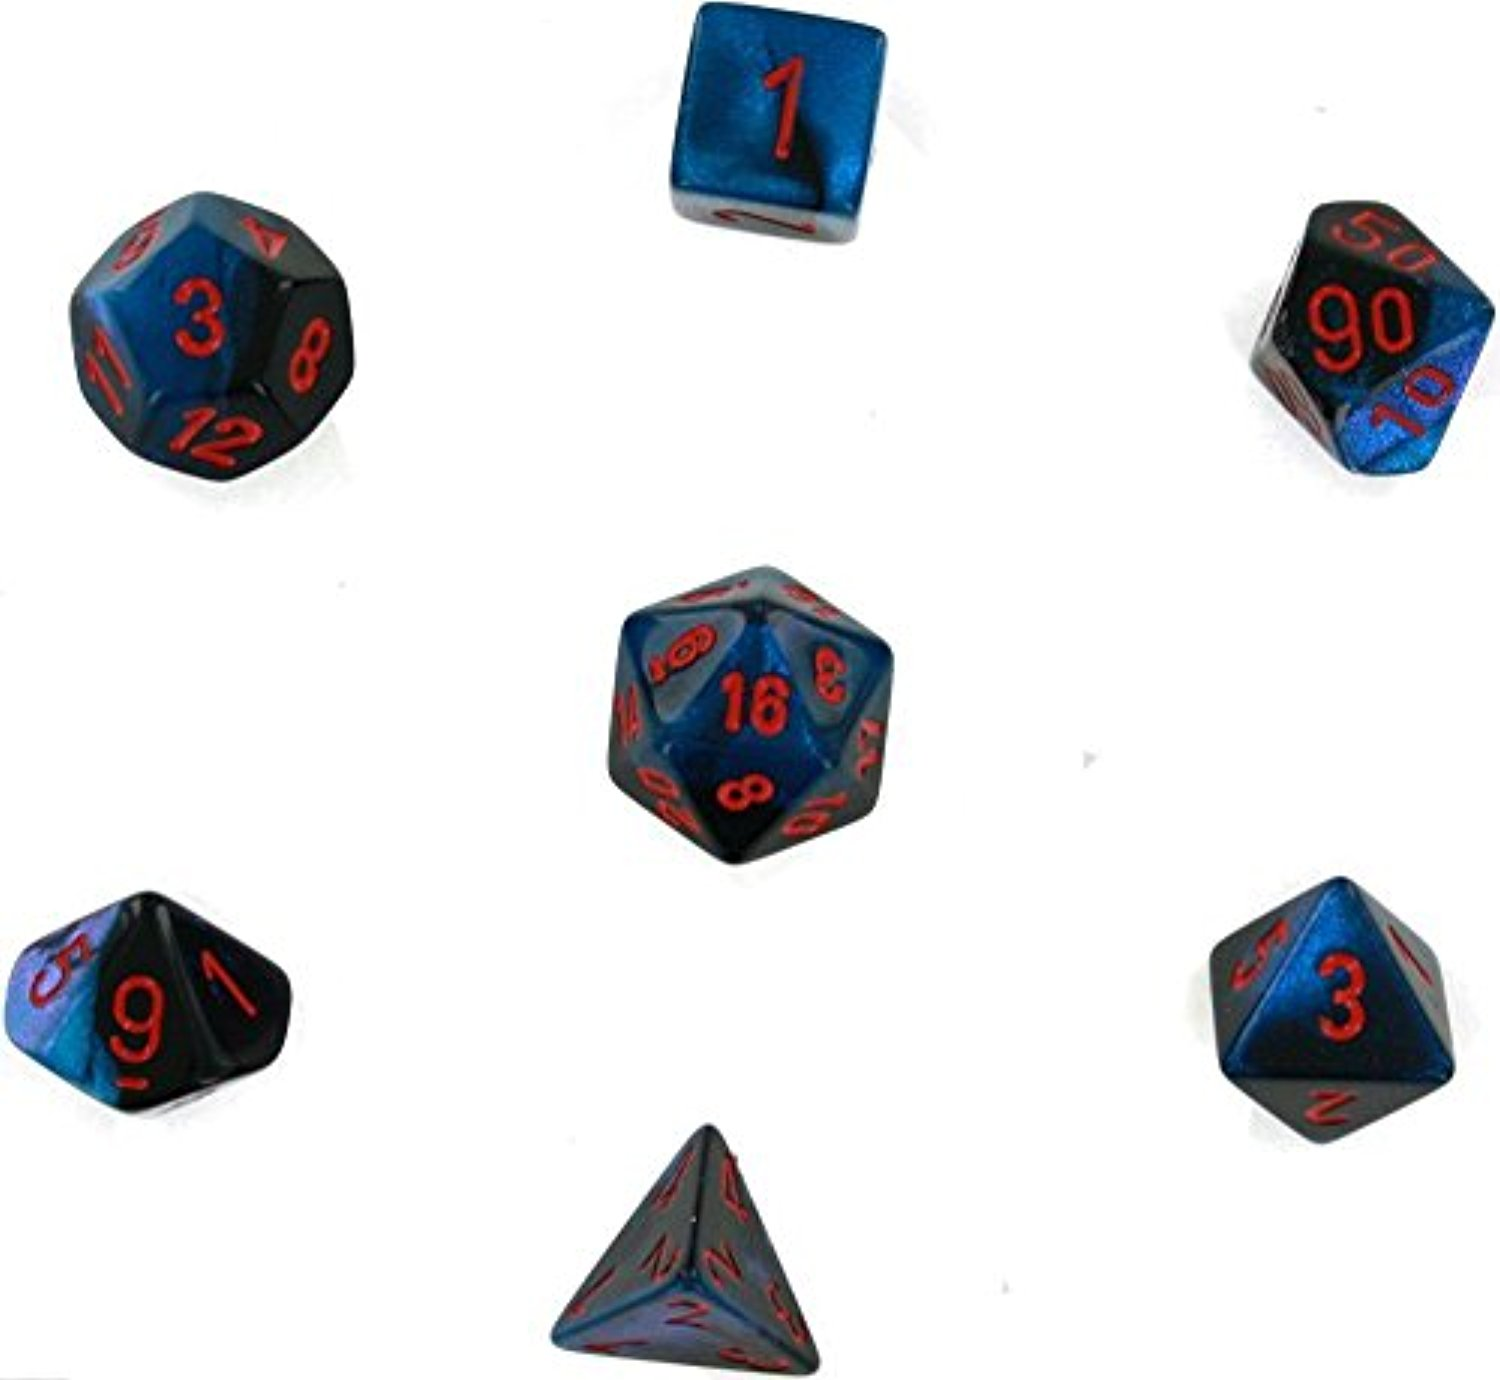 7-setCubeGemini#7 BK Starlight rd Chessex Gemini Polyhedral Die Set, Red/Black Manufacturing 26458CHX